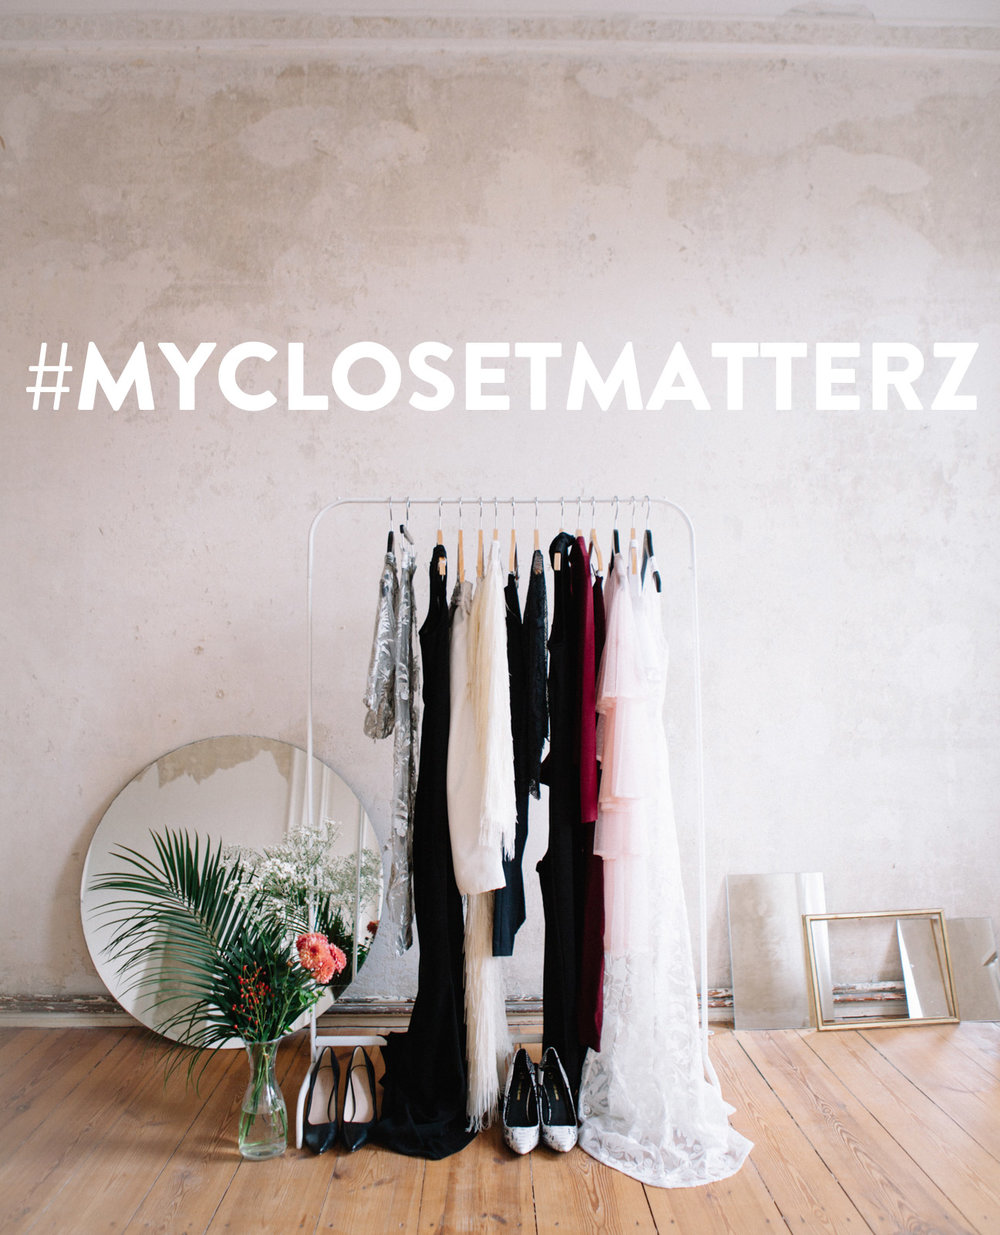 fashion-campaign-myclosetmatterz.jpg